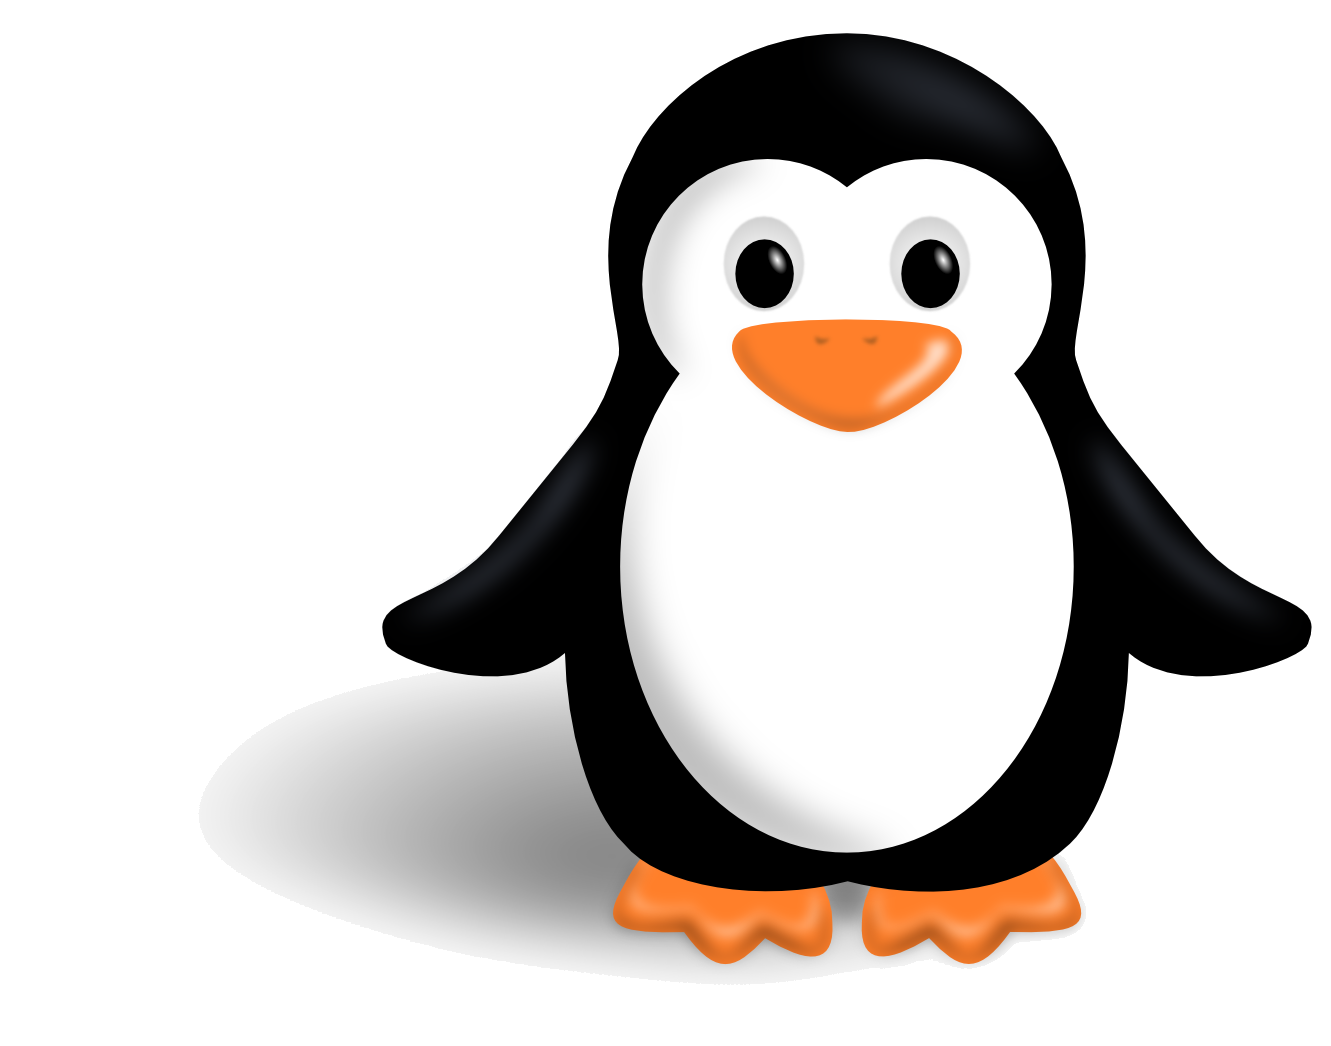 Penguin Free Penguins Clipart Clip Art On Transparent Png.